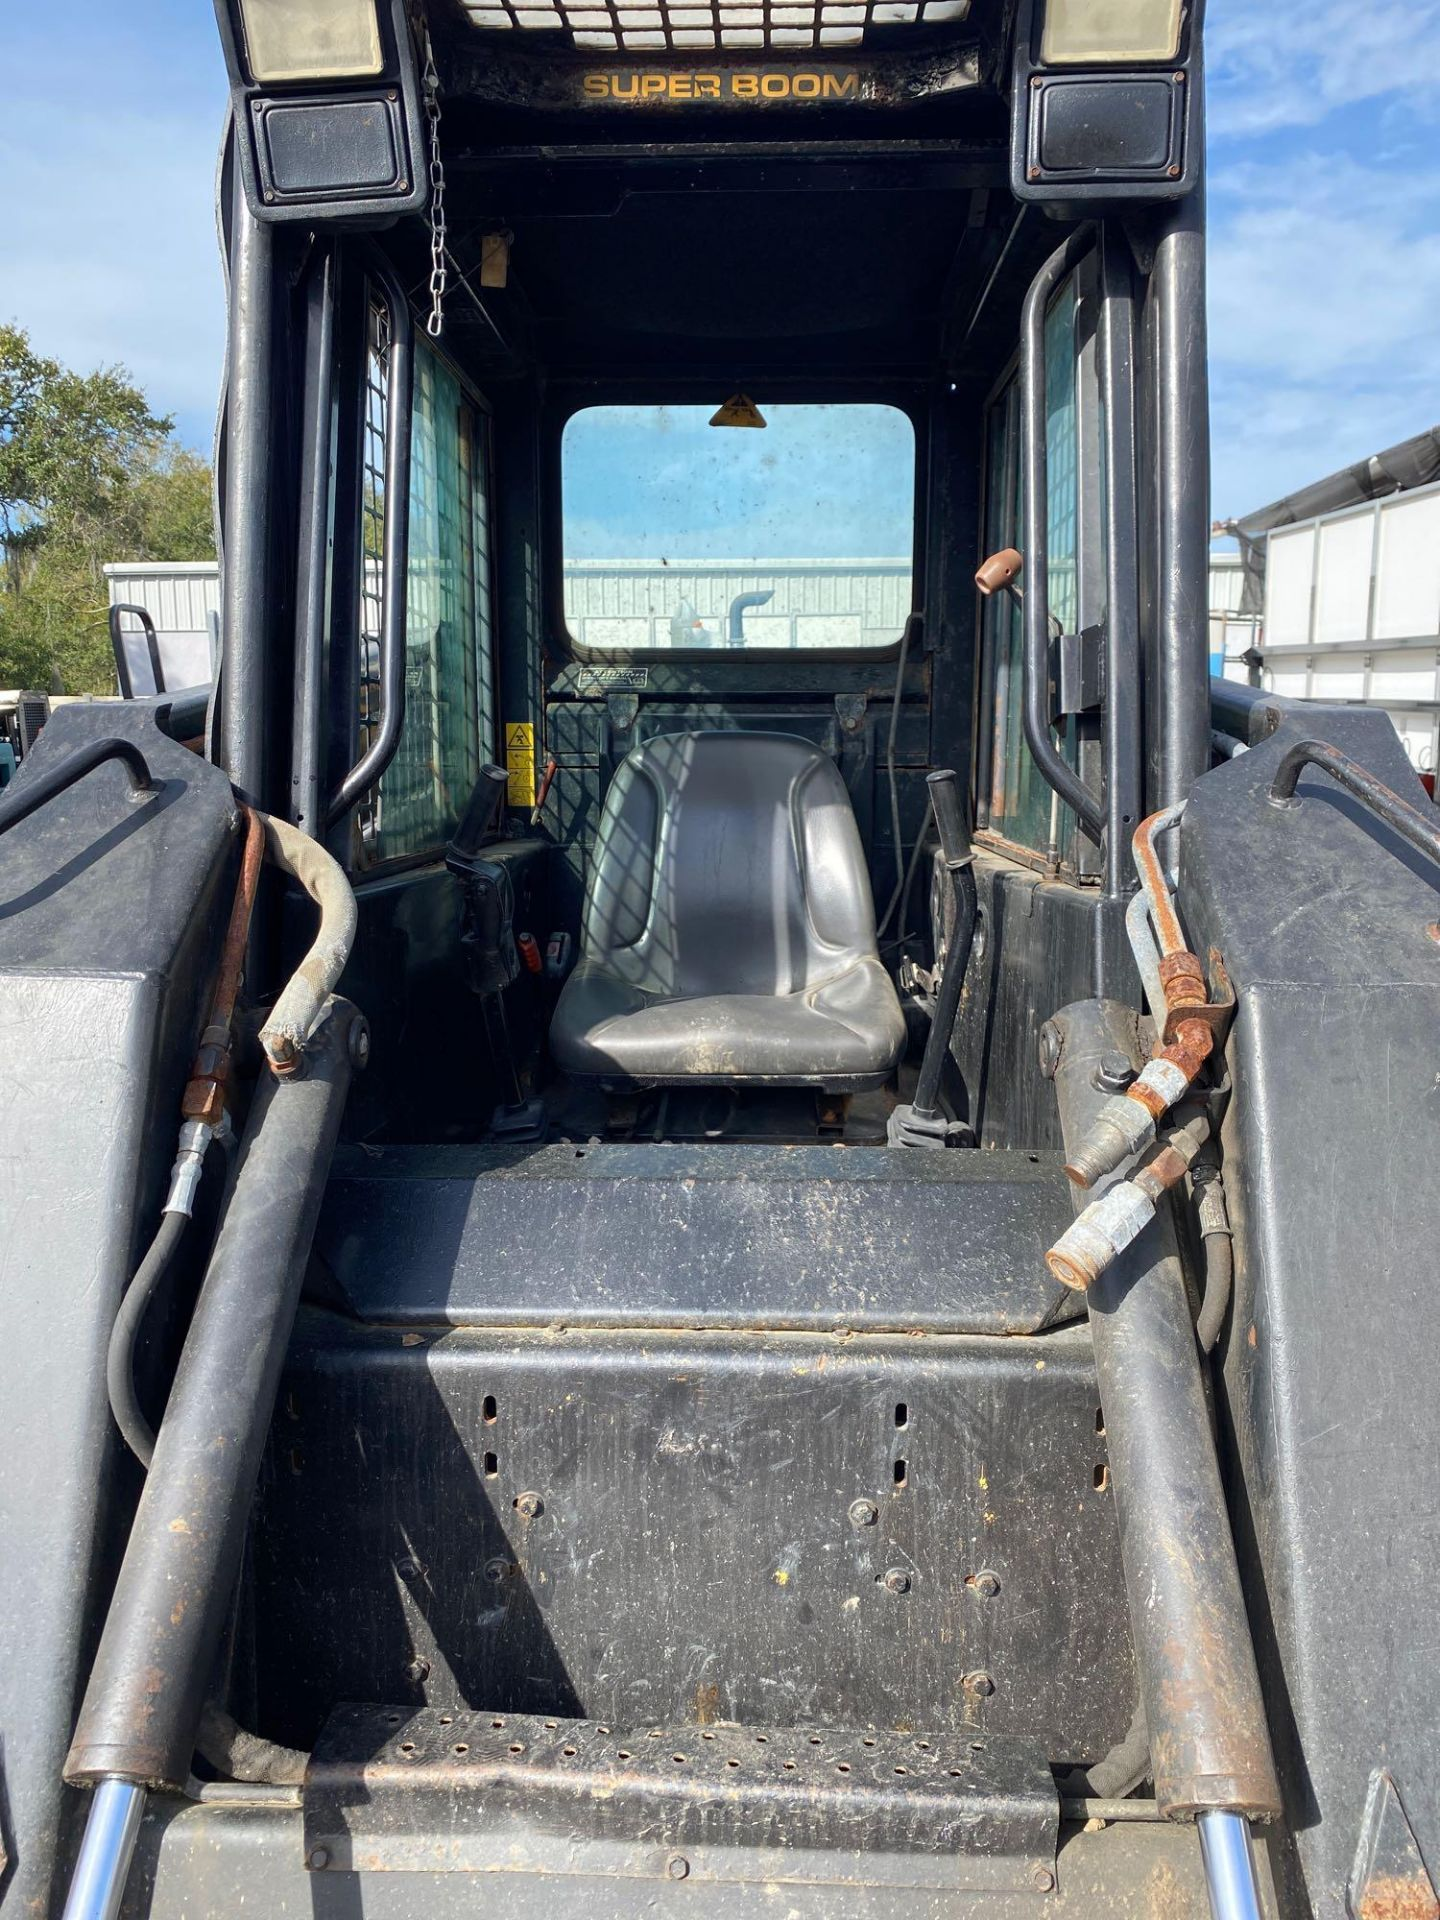 Lot 34 - NEW HOLLAND LX865 TURBO DIESEL SKID STEER, BUCKET ATTACHMENT, RUNS AND OPERATES